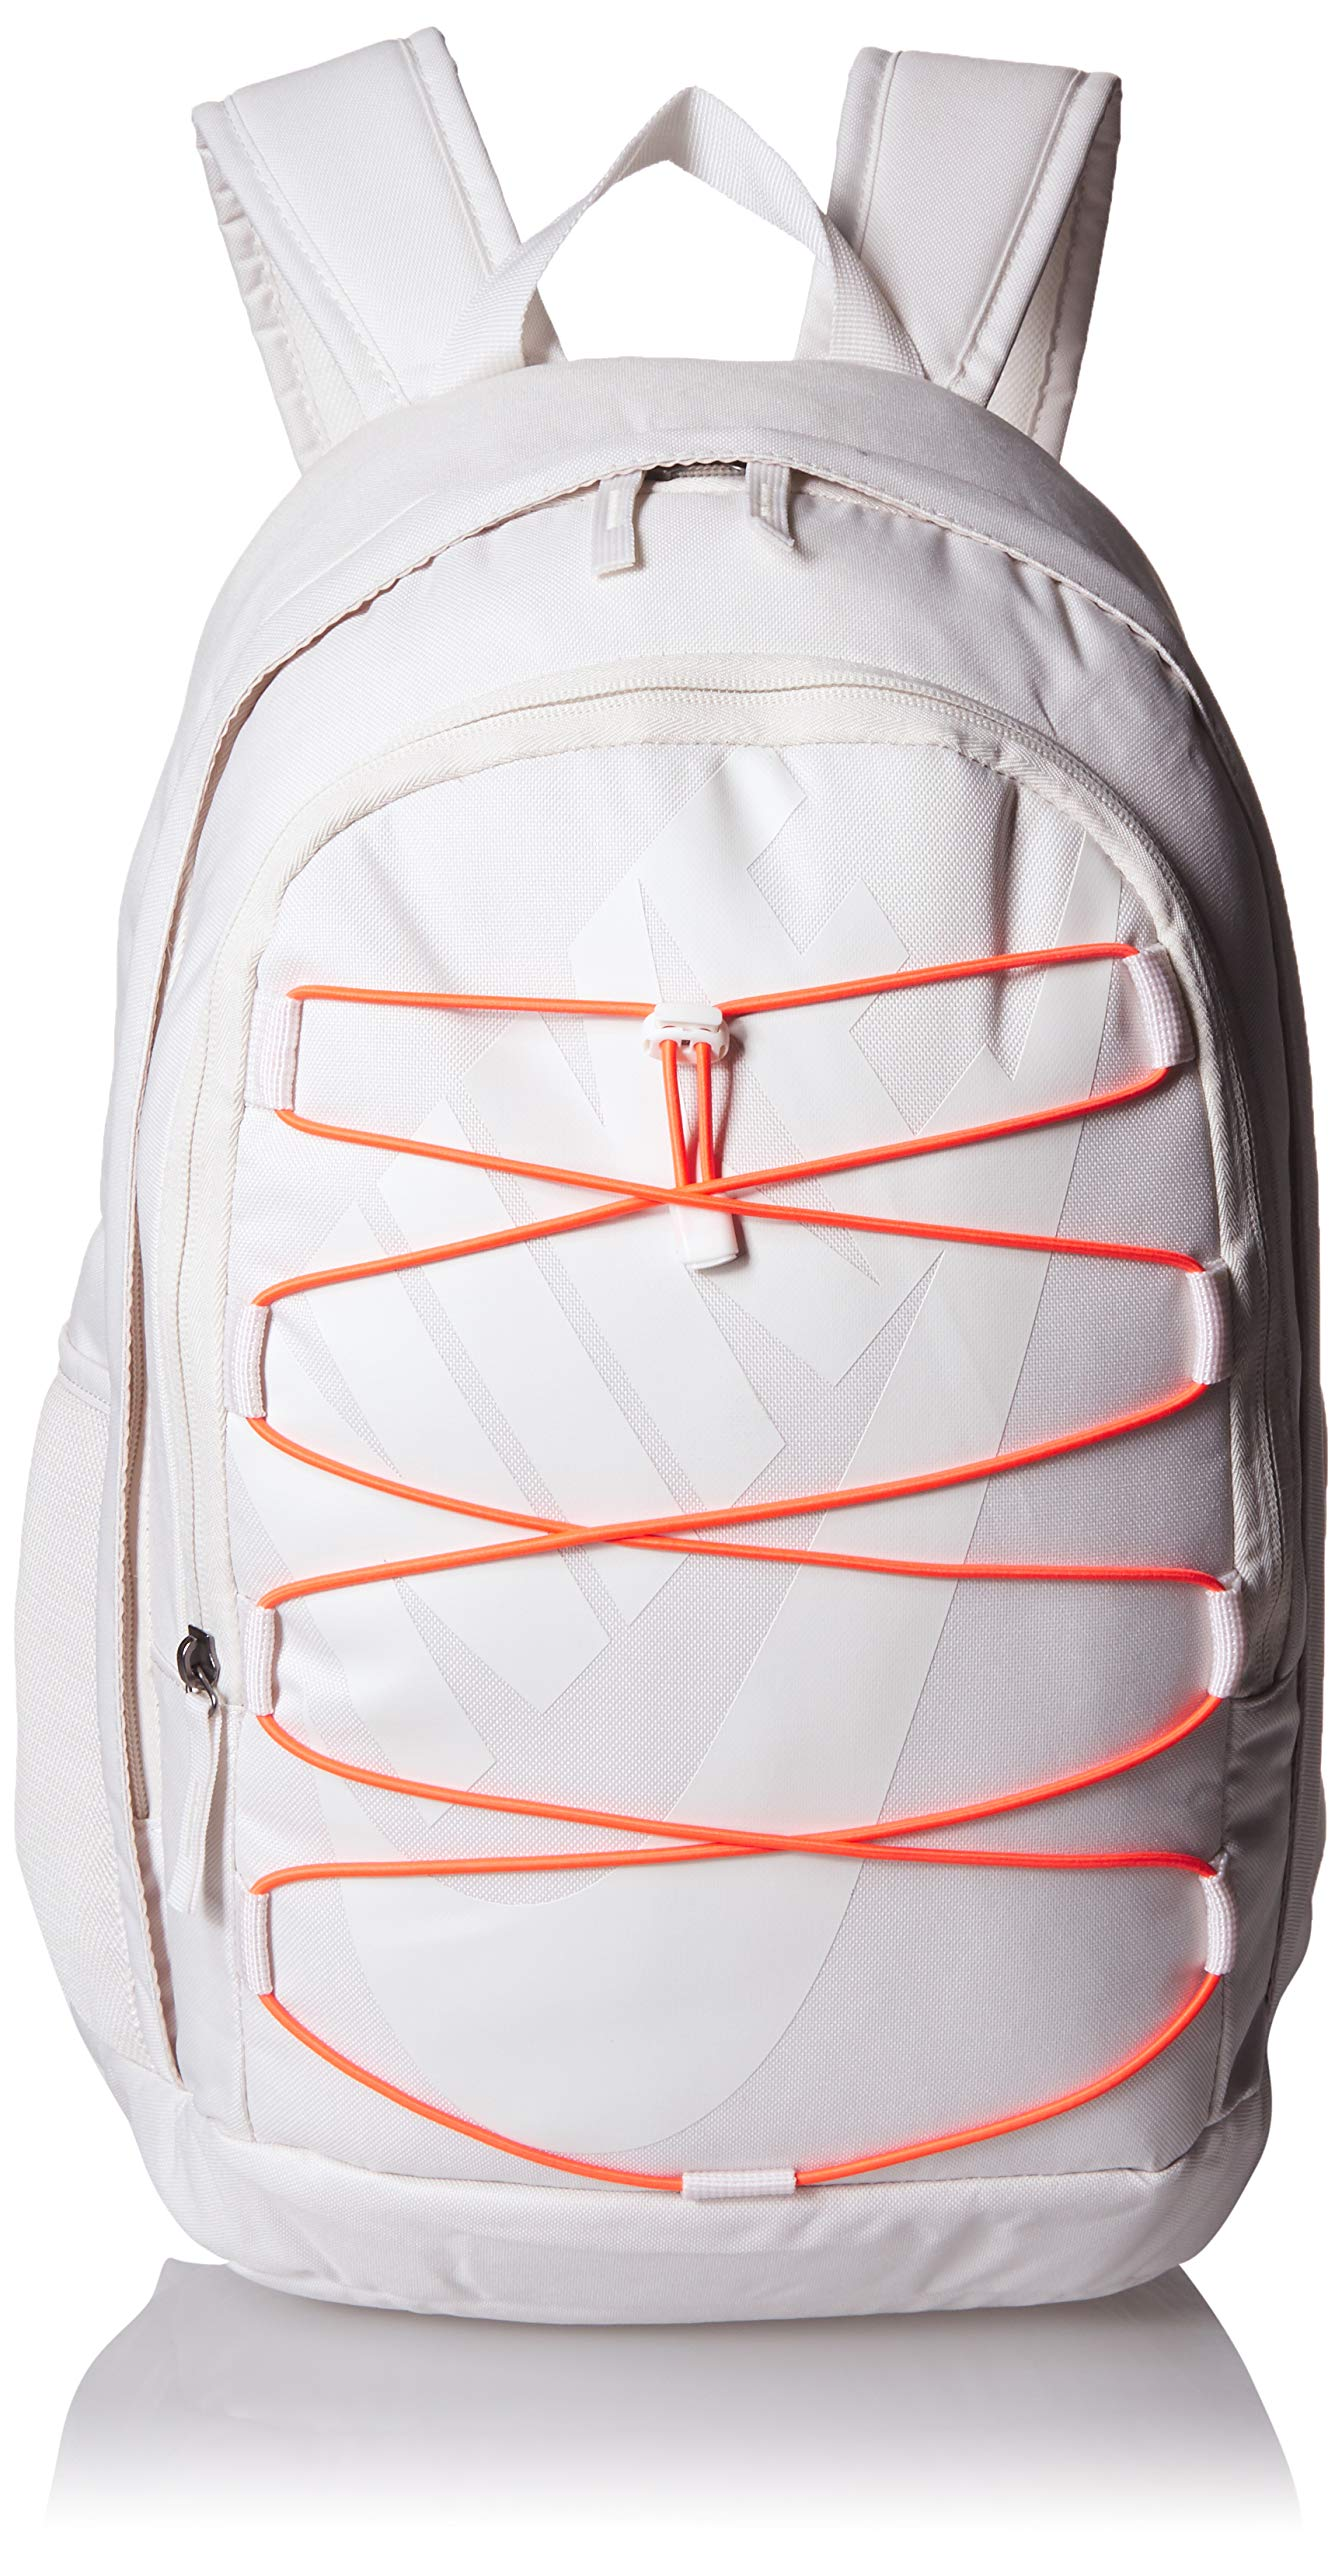 Nike Hayward 2.0 Backpack, Backpack for Women and Men with Polyester Shell & Adjustable Straps, Phantom/Bright Crimson/Phantom by Nike